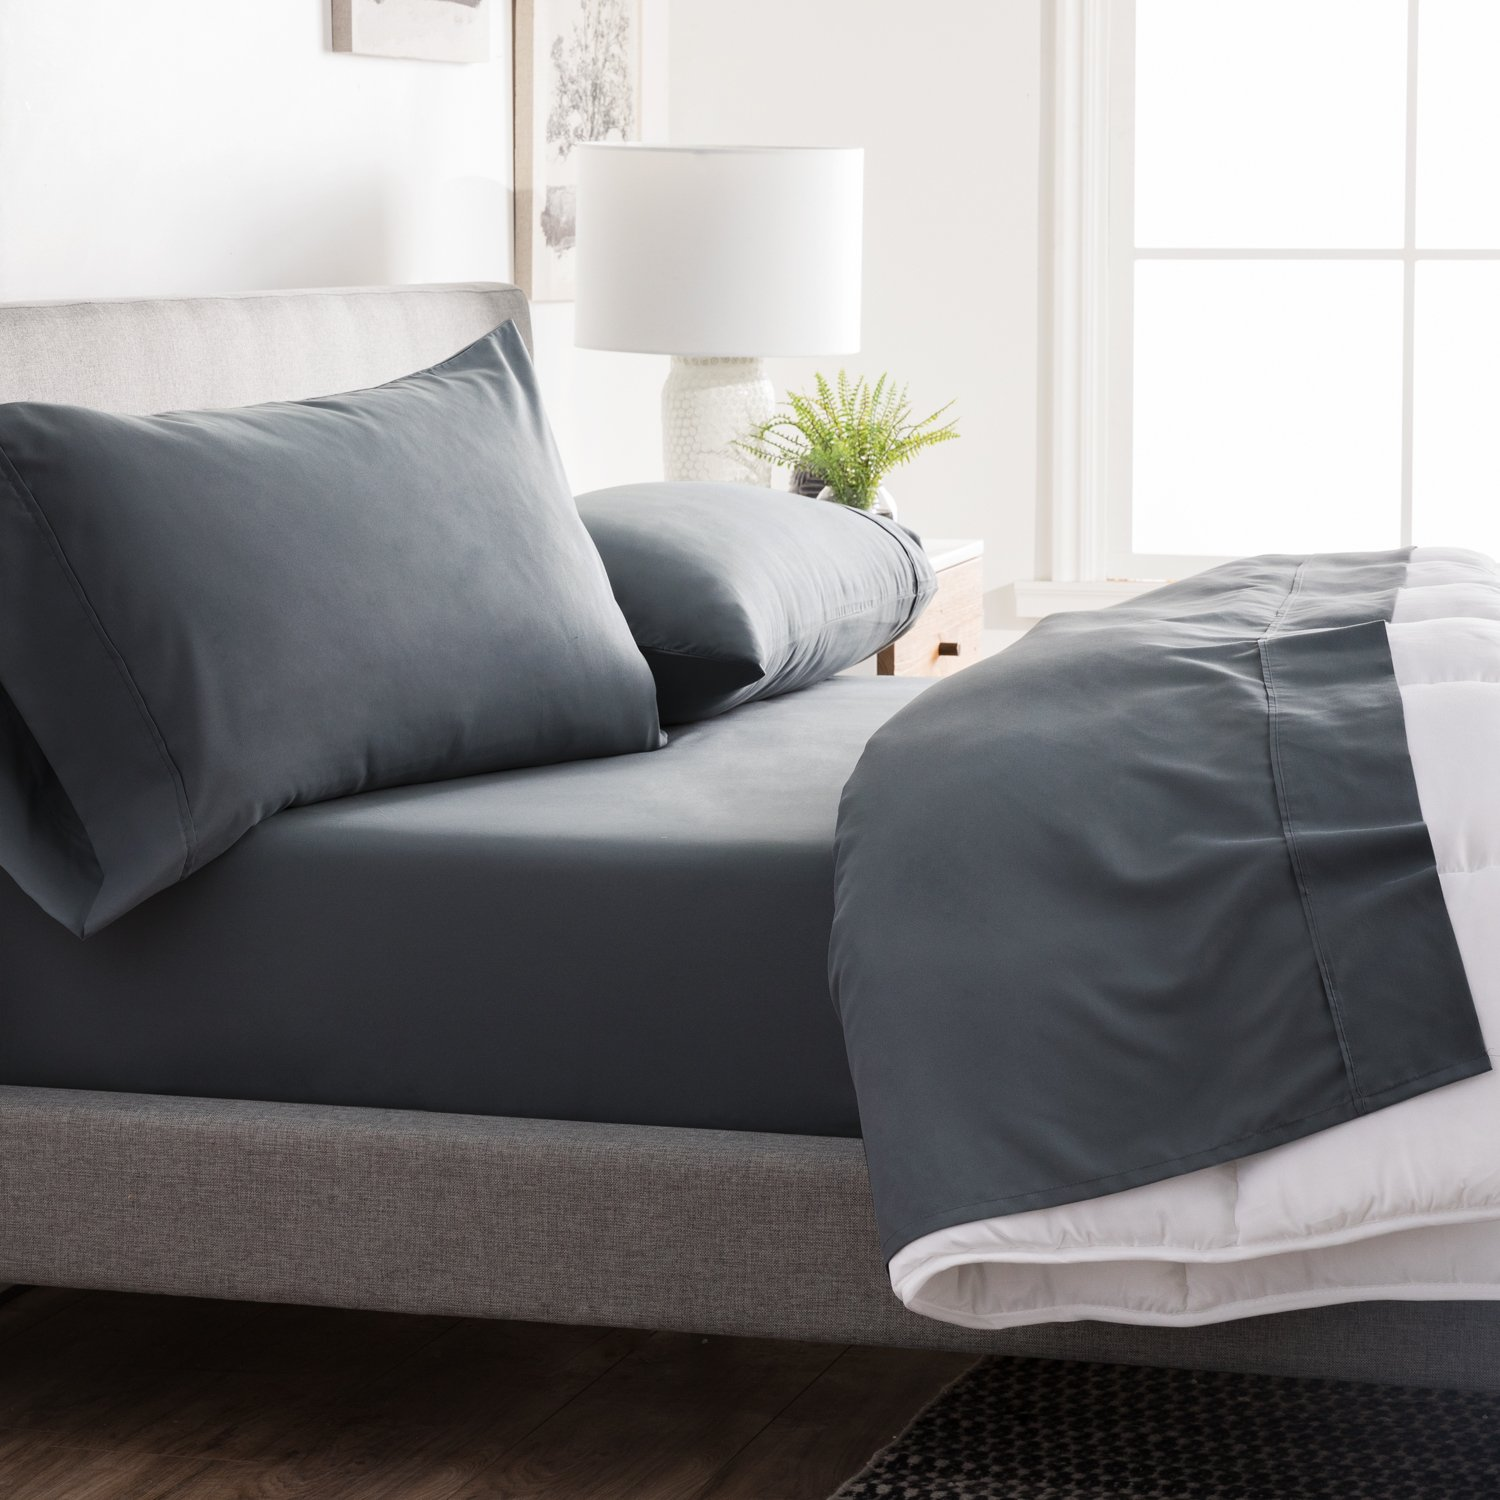 Brookside - Microfiber Sheet Set - Soft and Cozy - Hypoallergenic - Easy Care Fabric - Stain and Wrinkle Resistant - Split California King - Slate